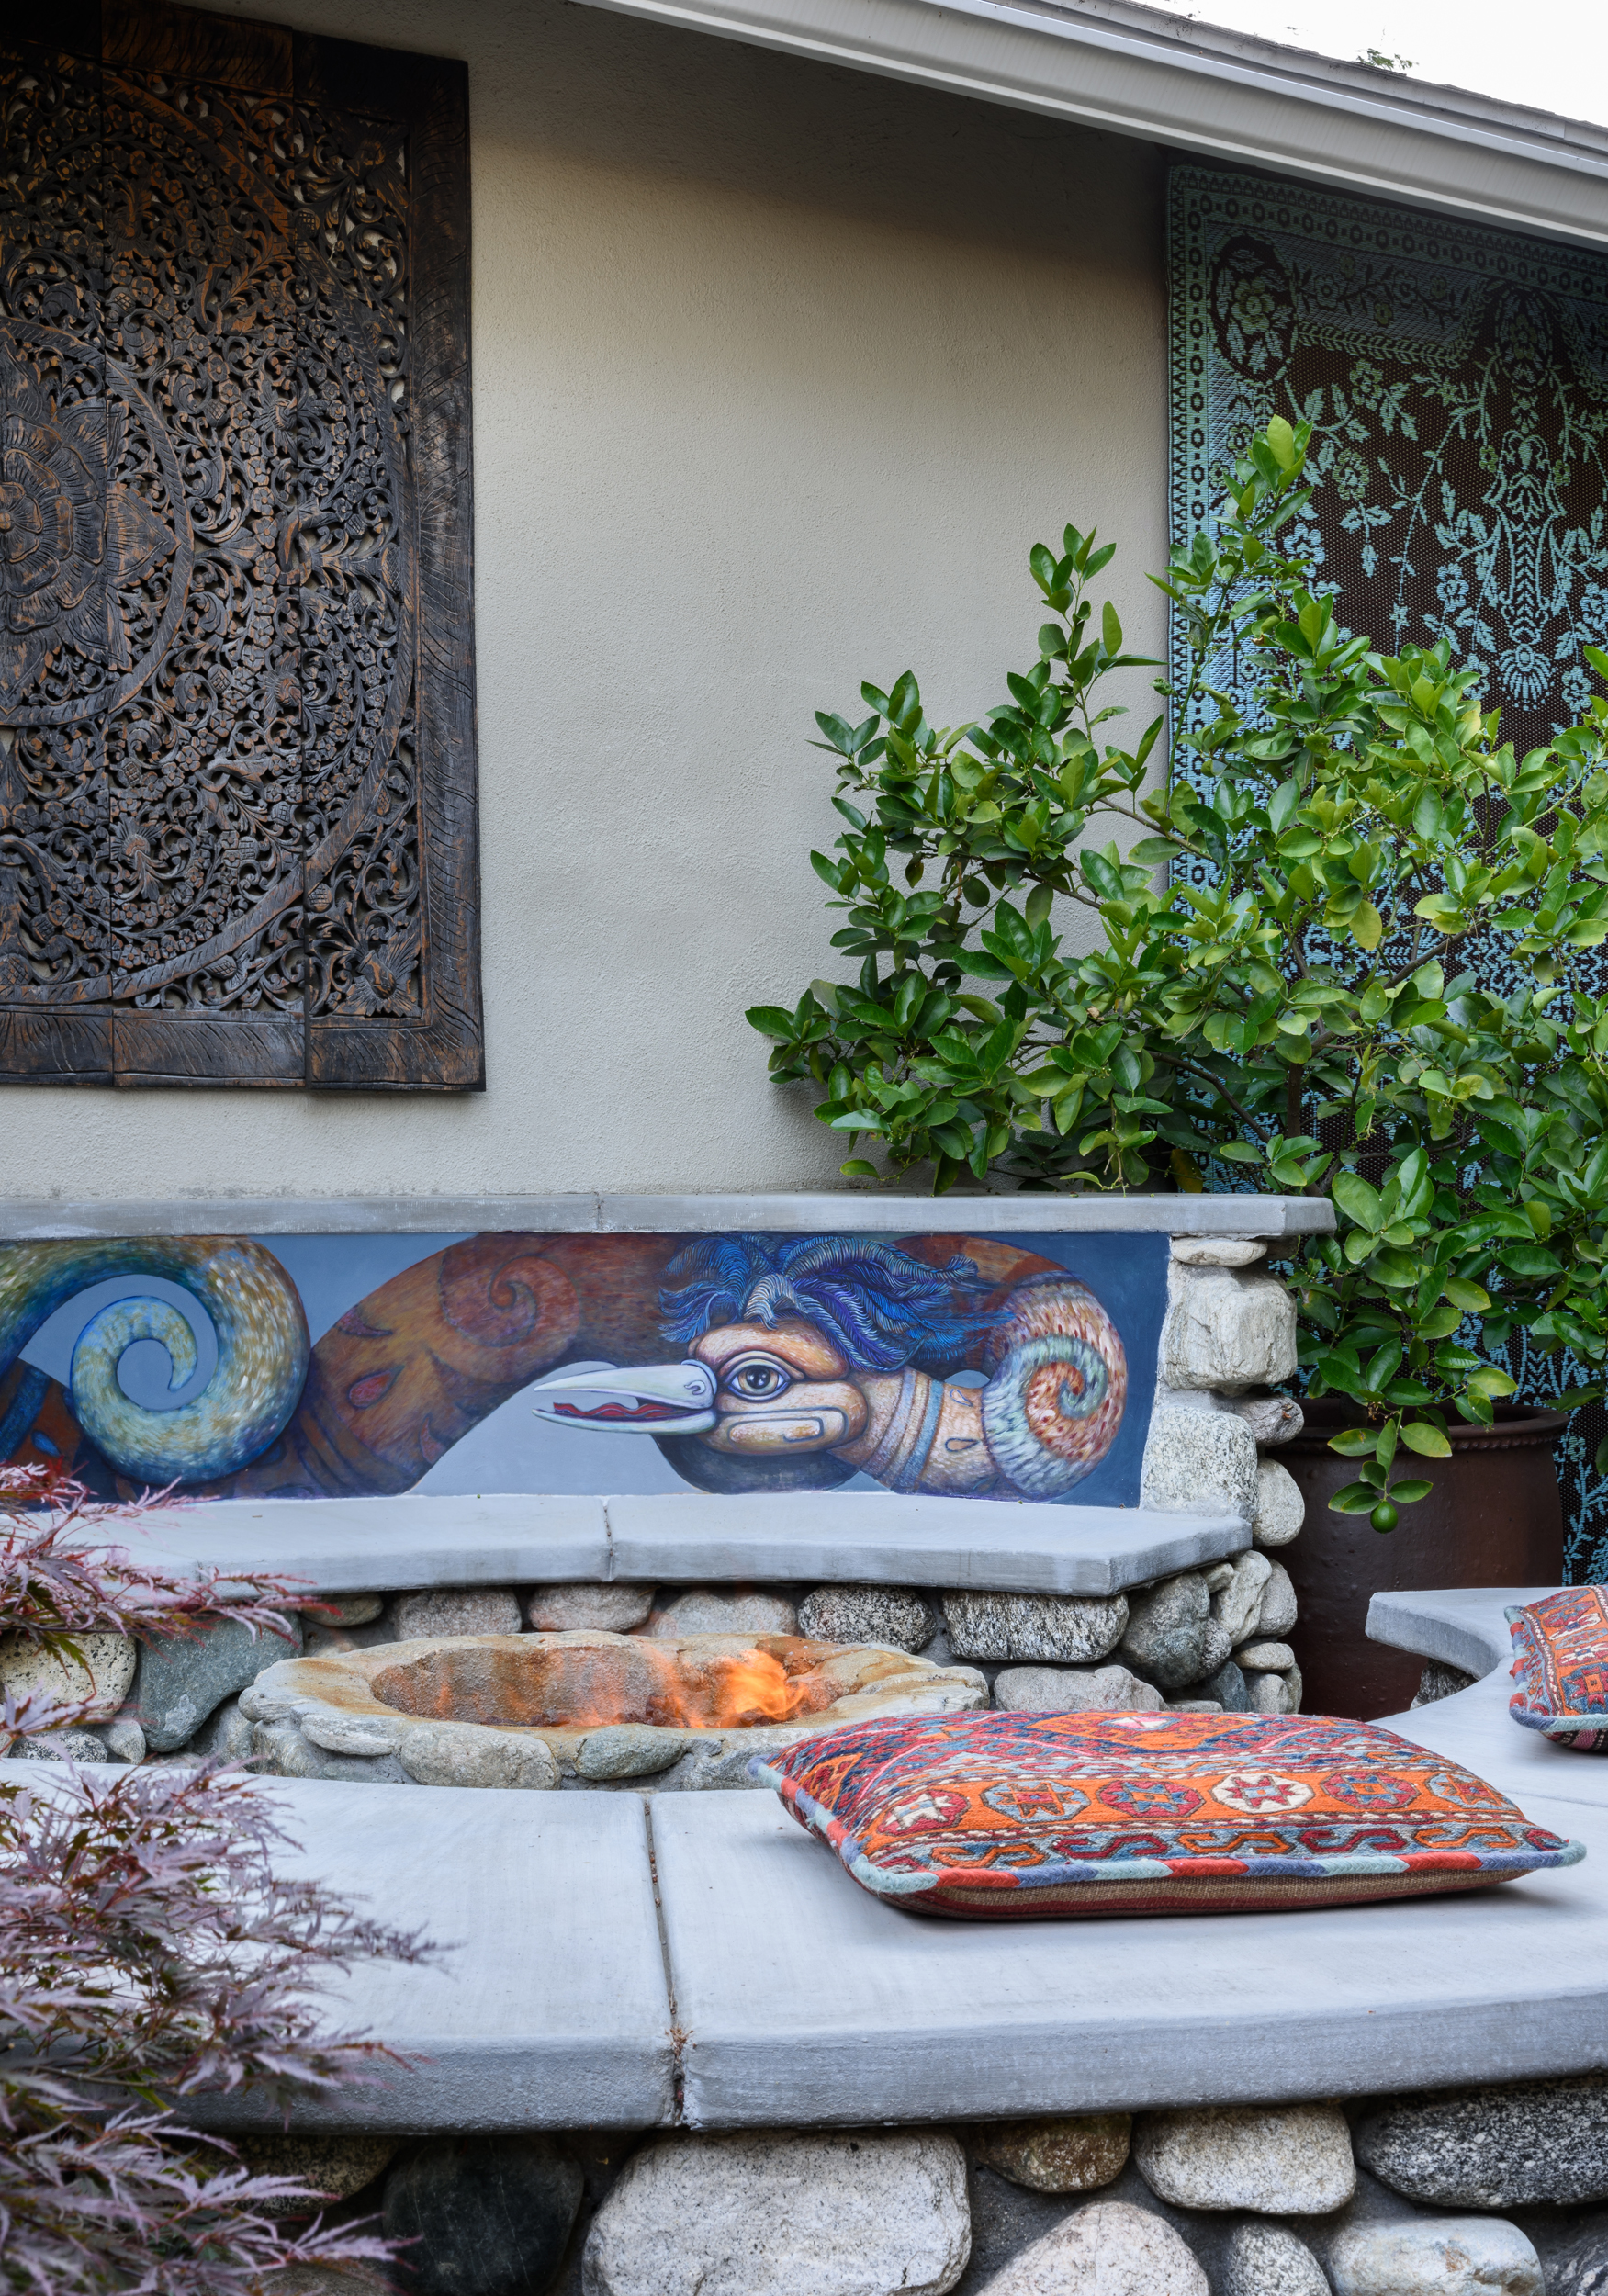 Serene Asian-inspired woodland backyard with a stone fire pit seating area showcasing artwork